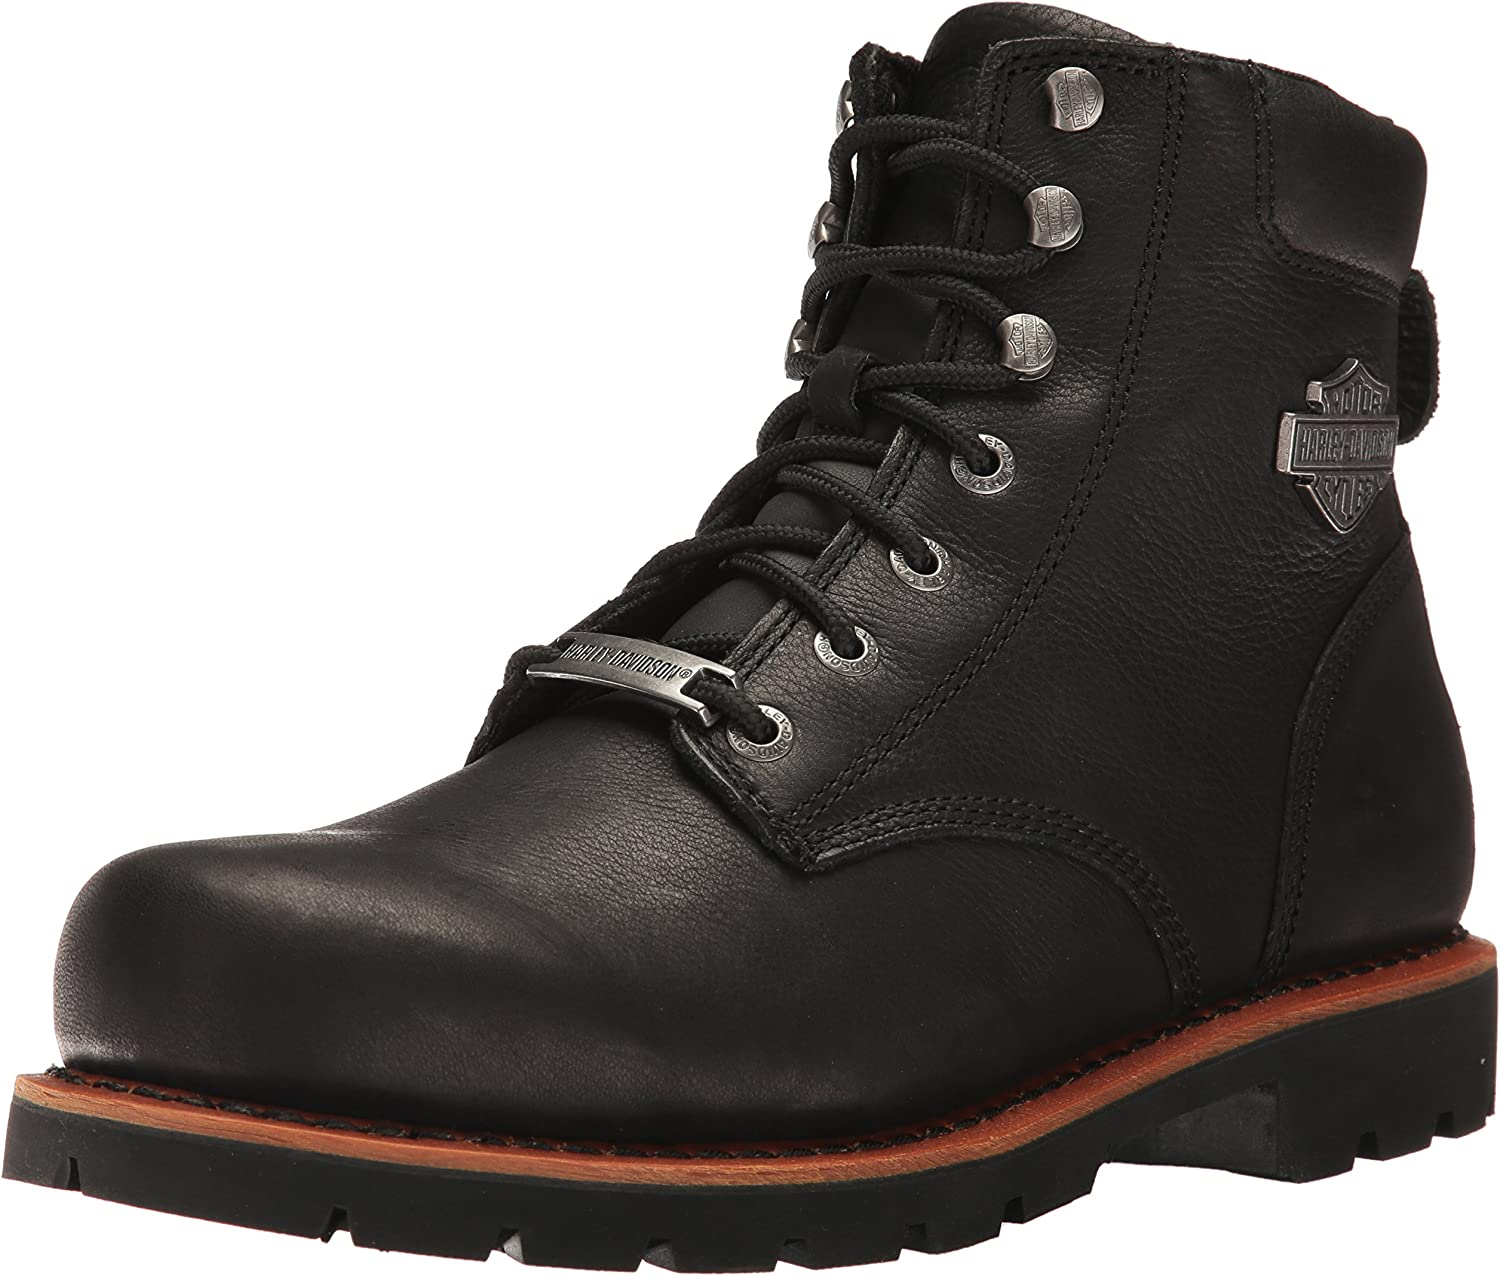 Harley-Davidson Mens Vista Ridge Work Boot